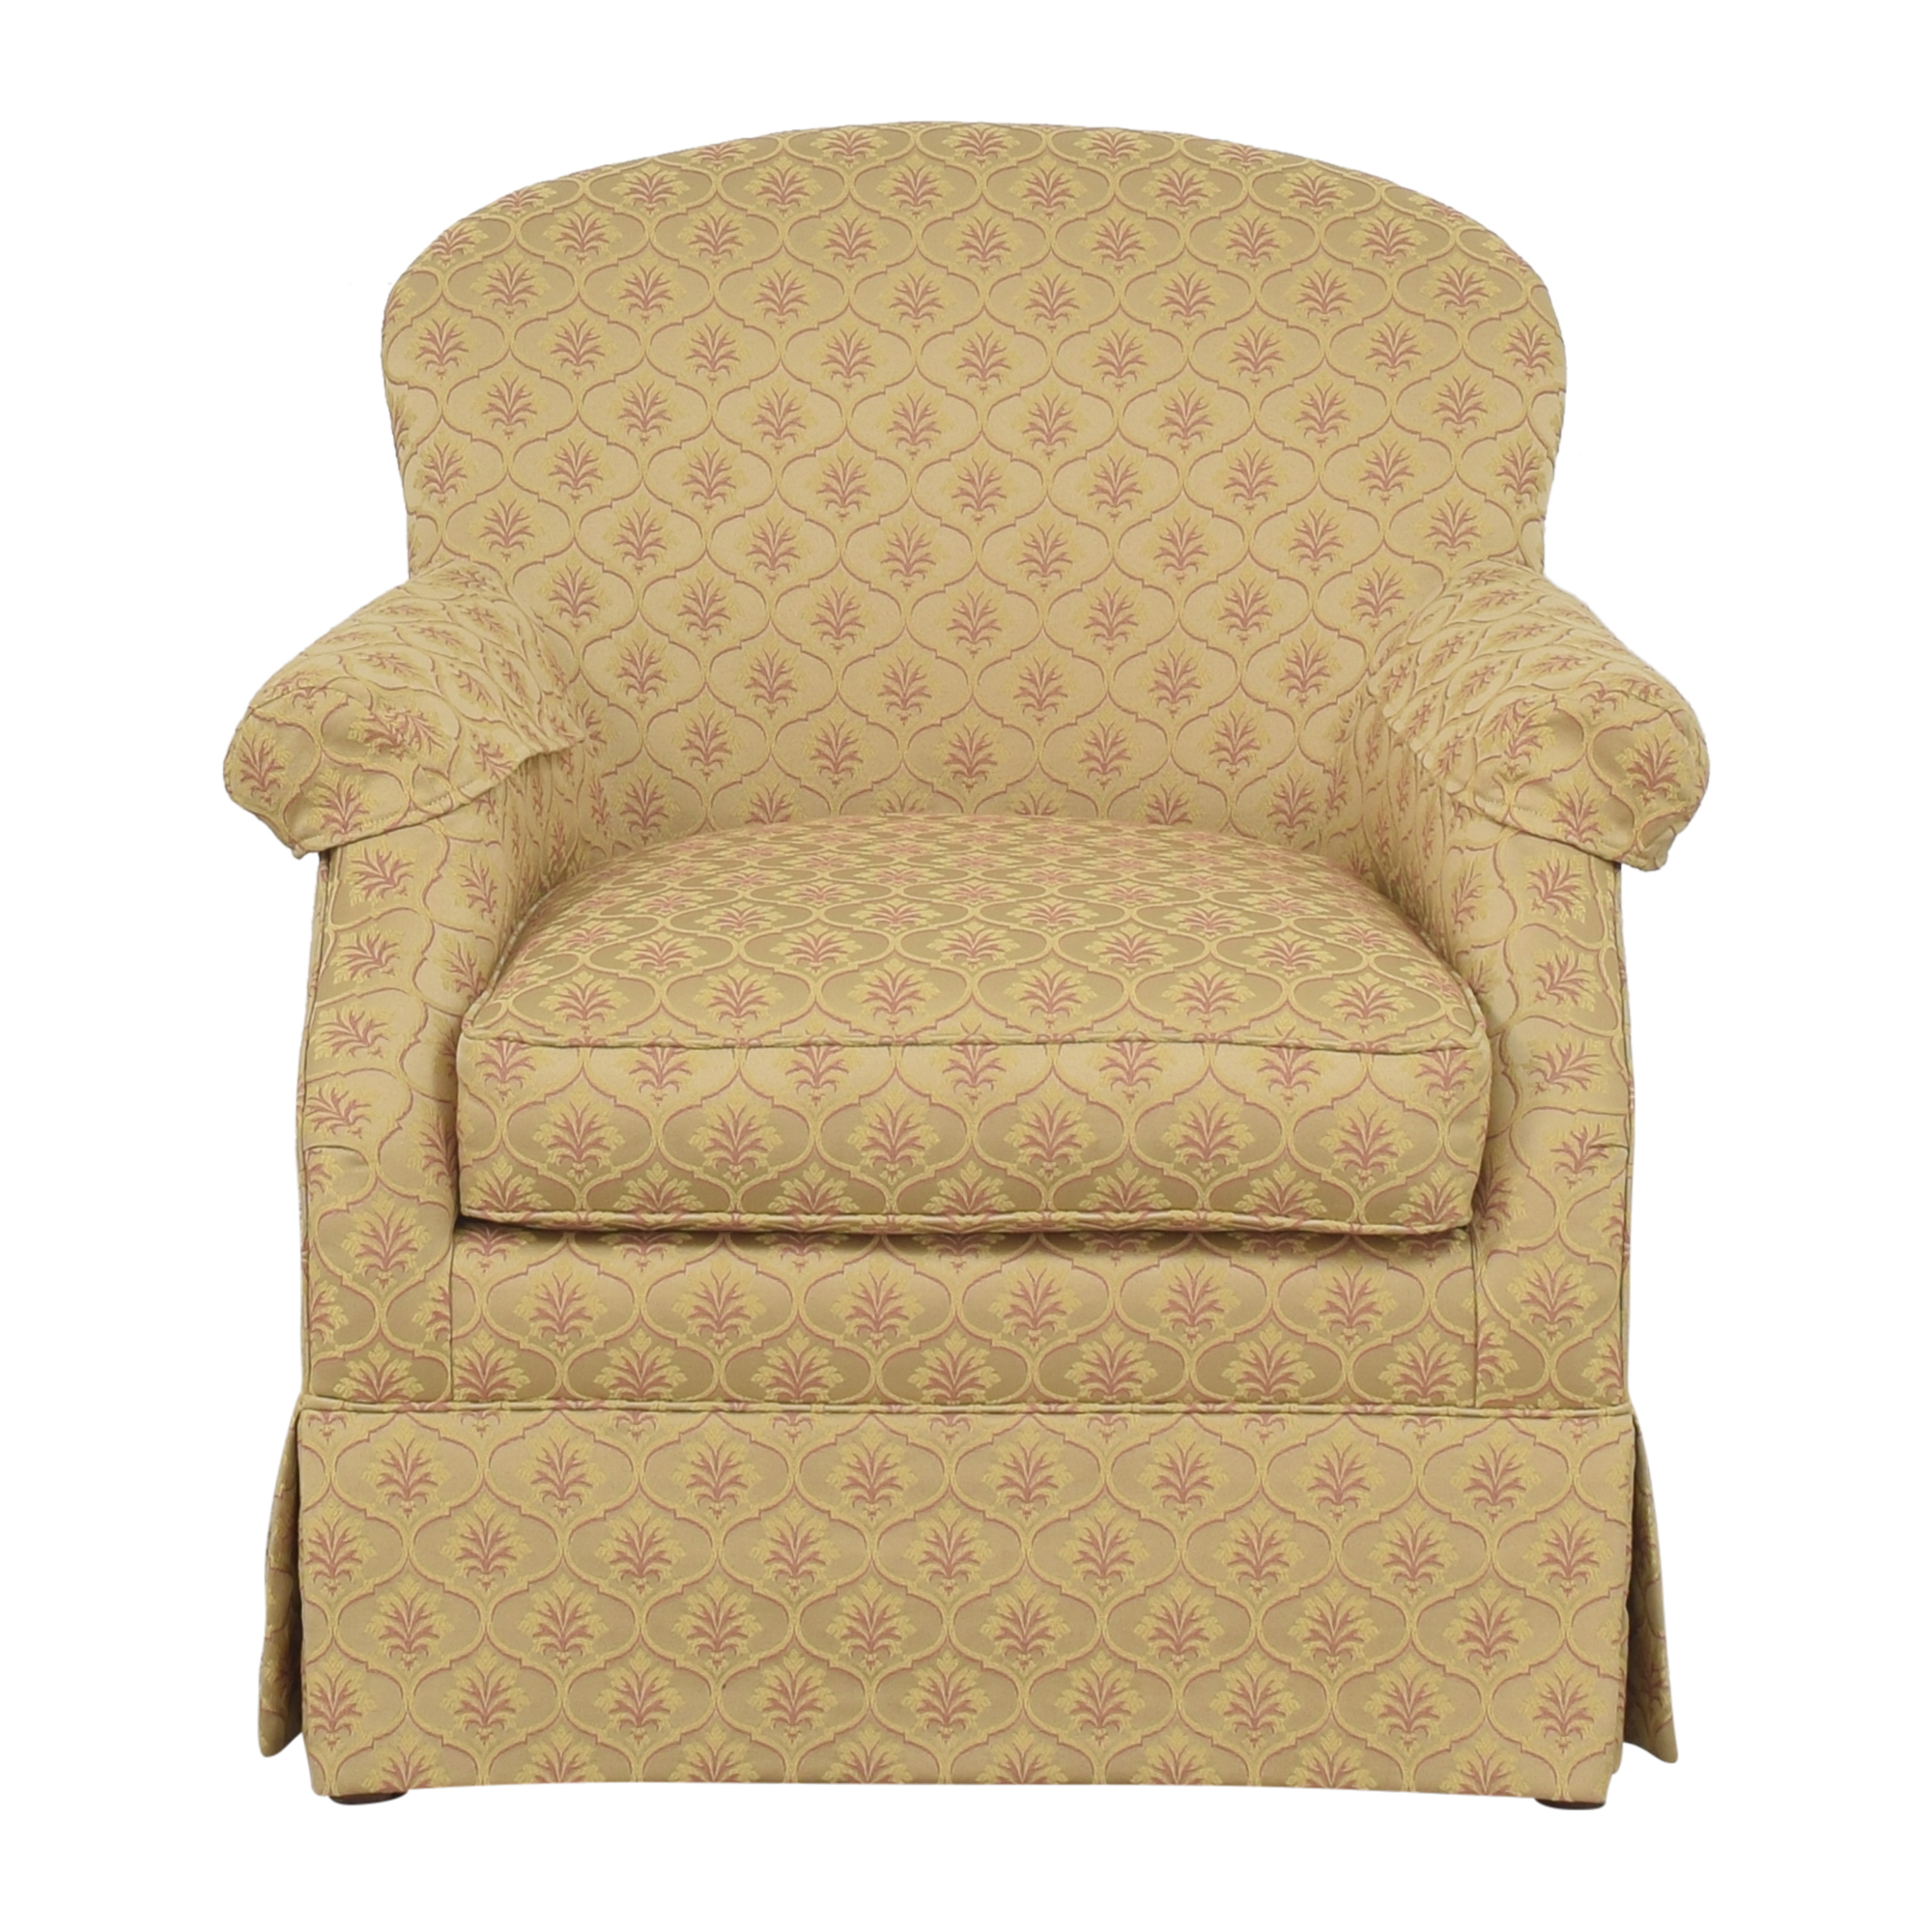 CR Laine CR Laine Skirted Accent Chair coupon